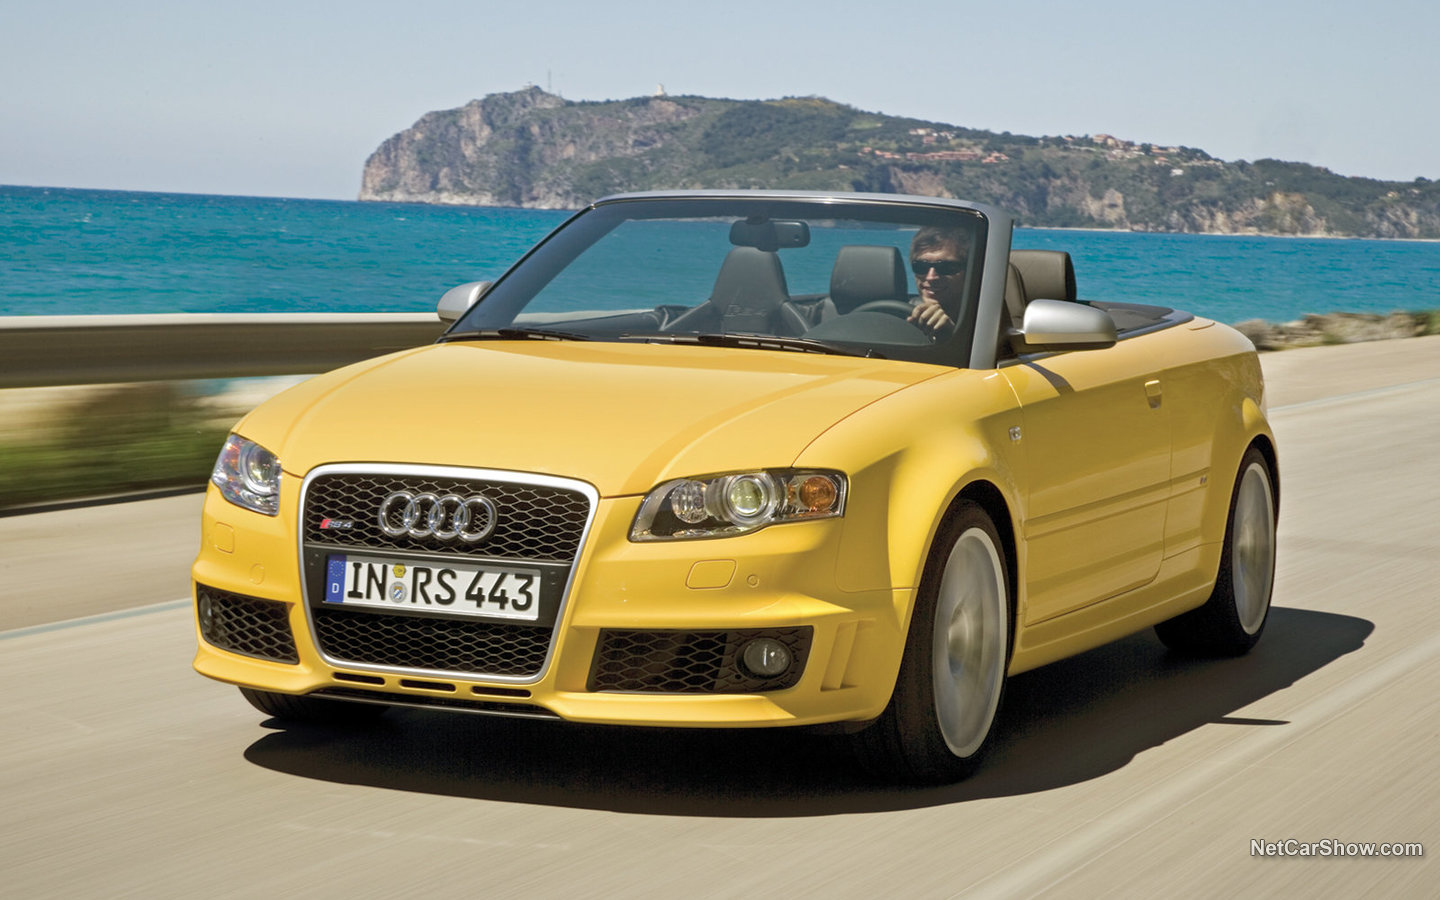 Audi A4 Cabriolet RS4 2006 8072dd59